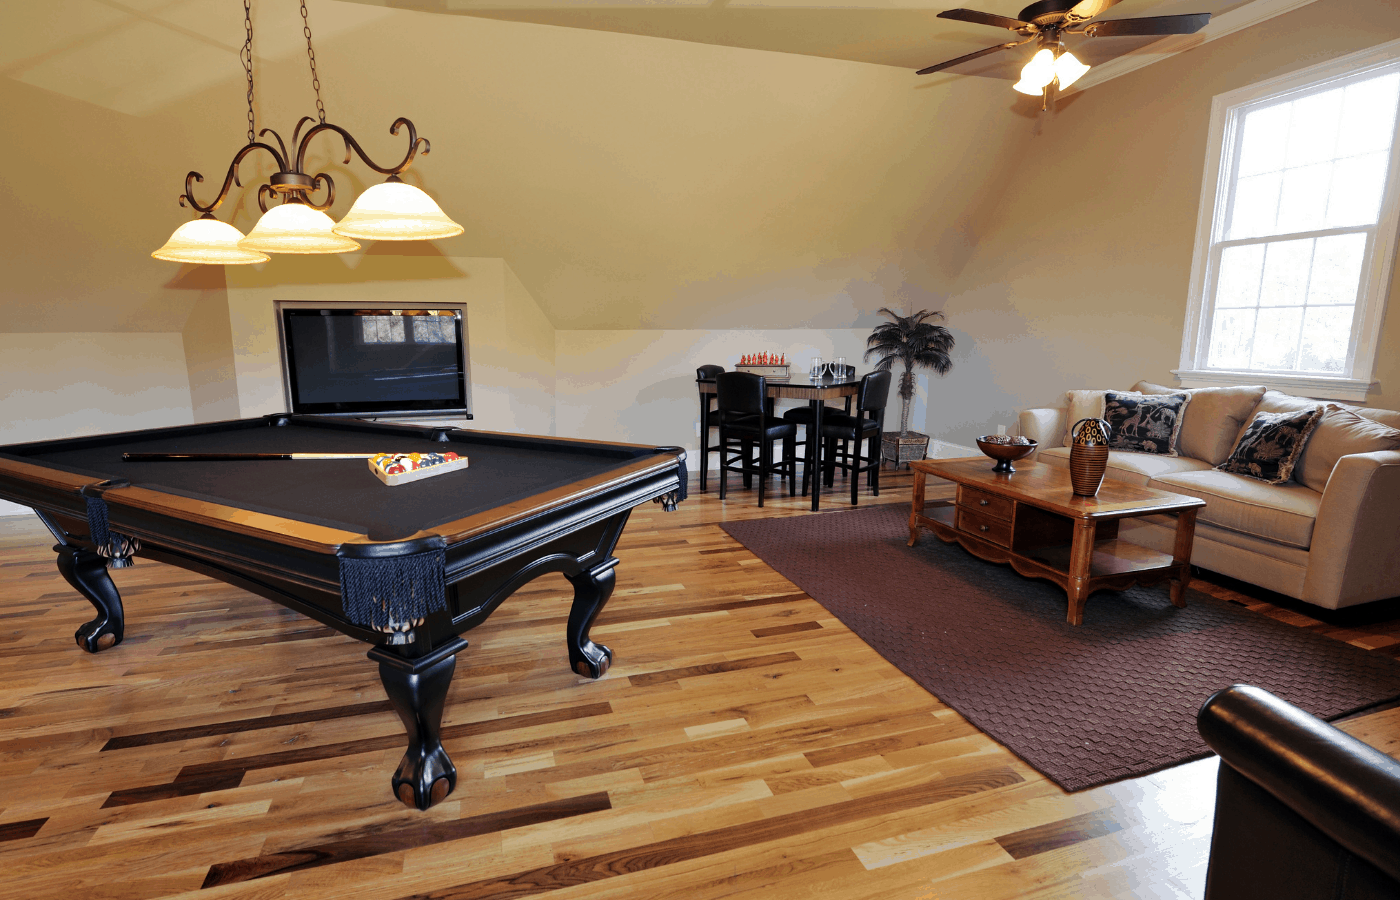 how to put a rug under an existing pool table